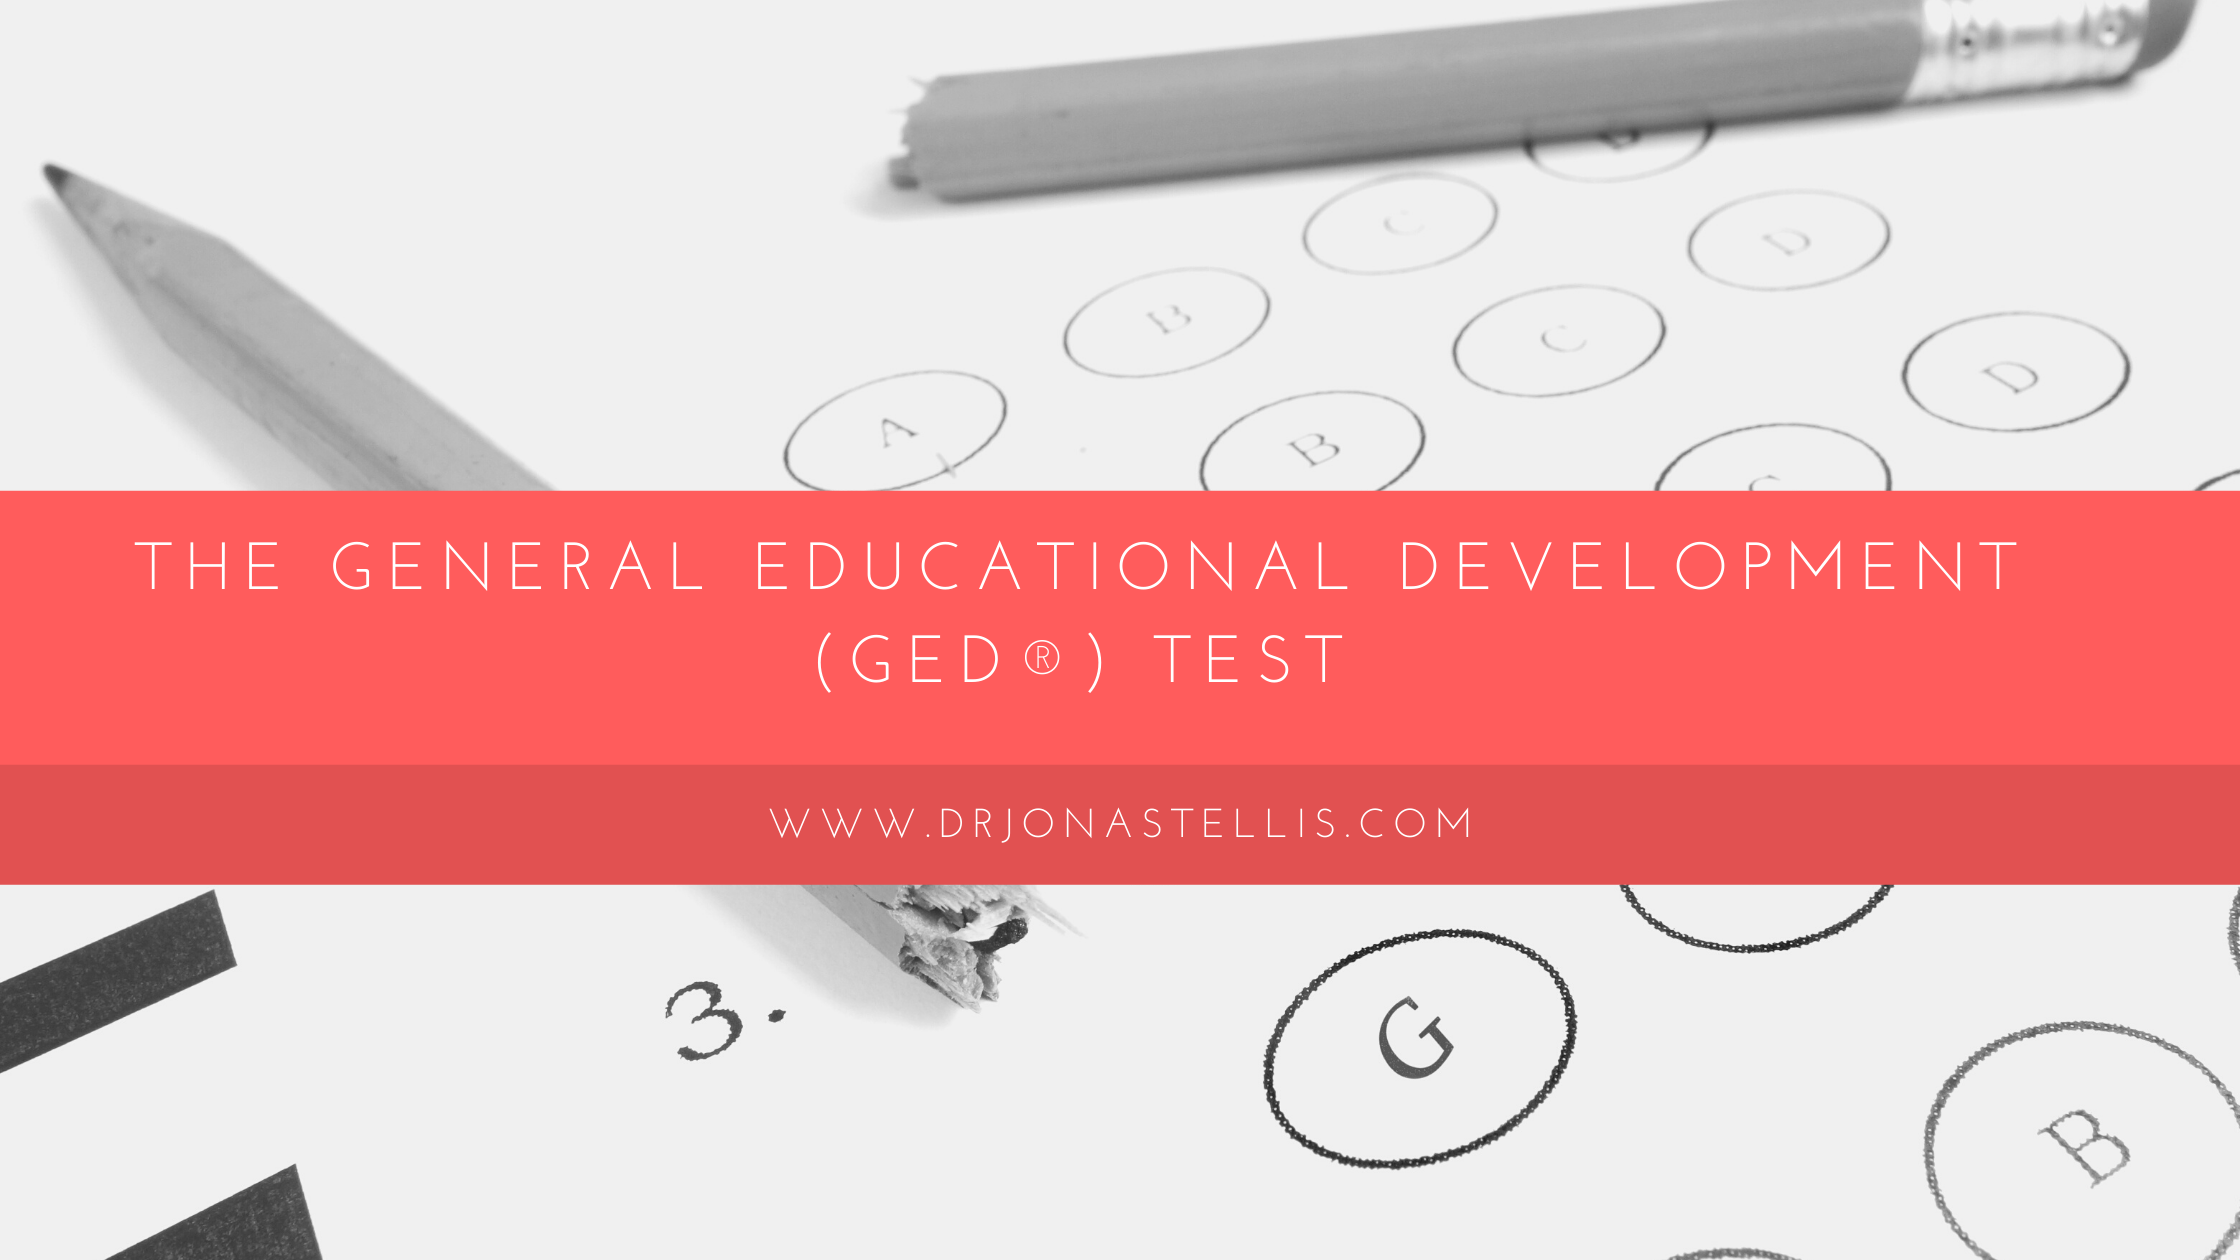 The General Educational Development (GED®) Test